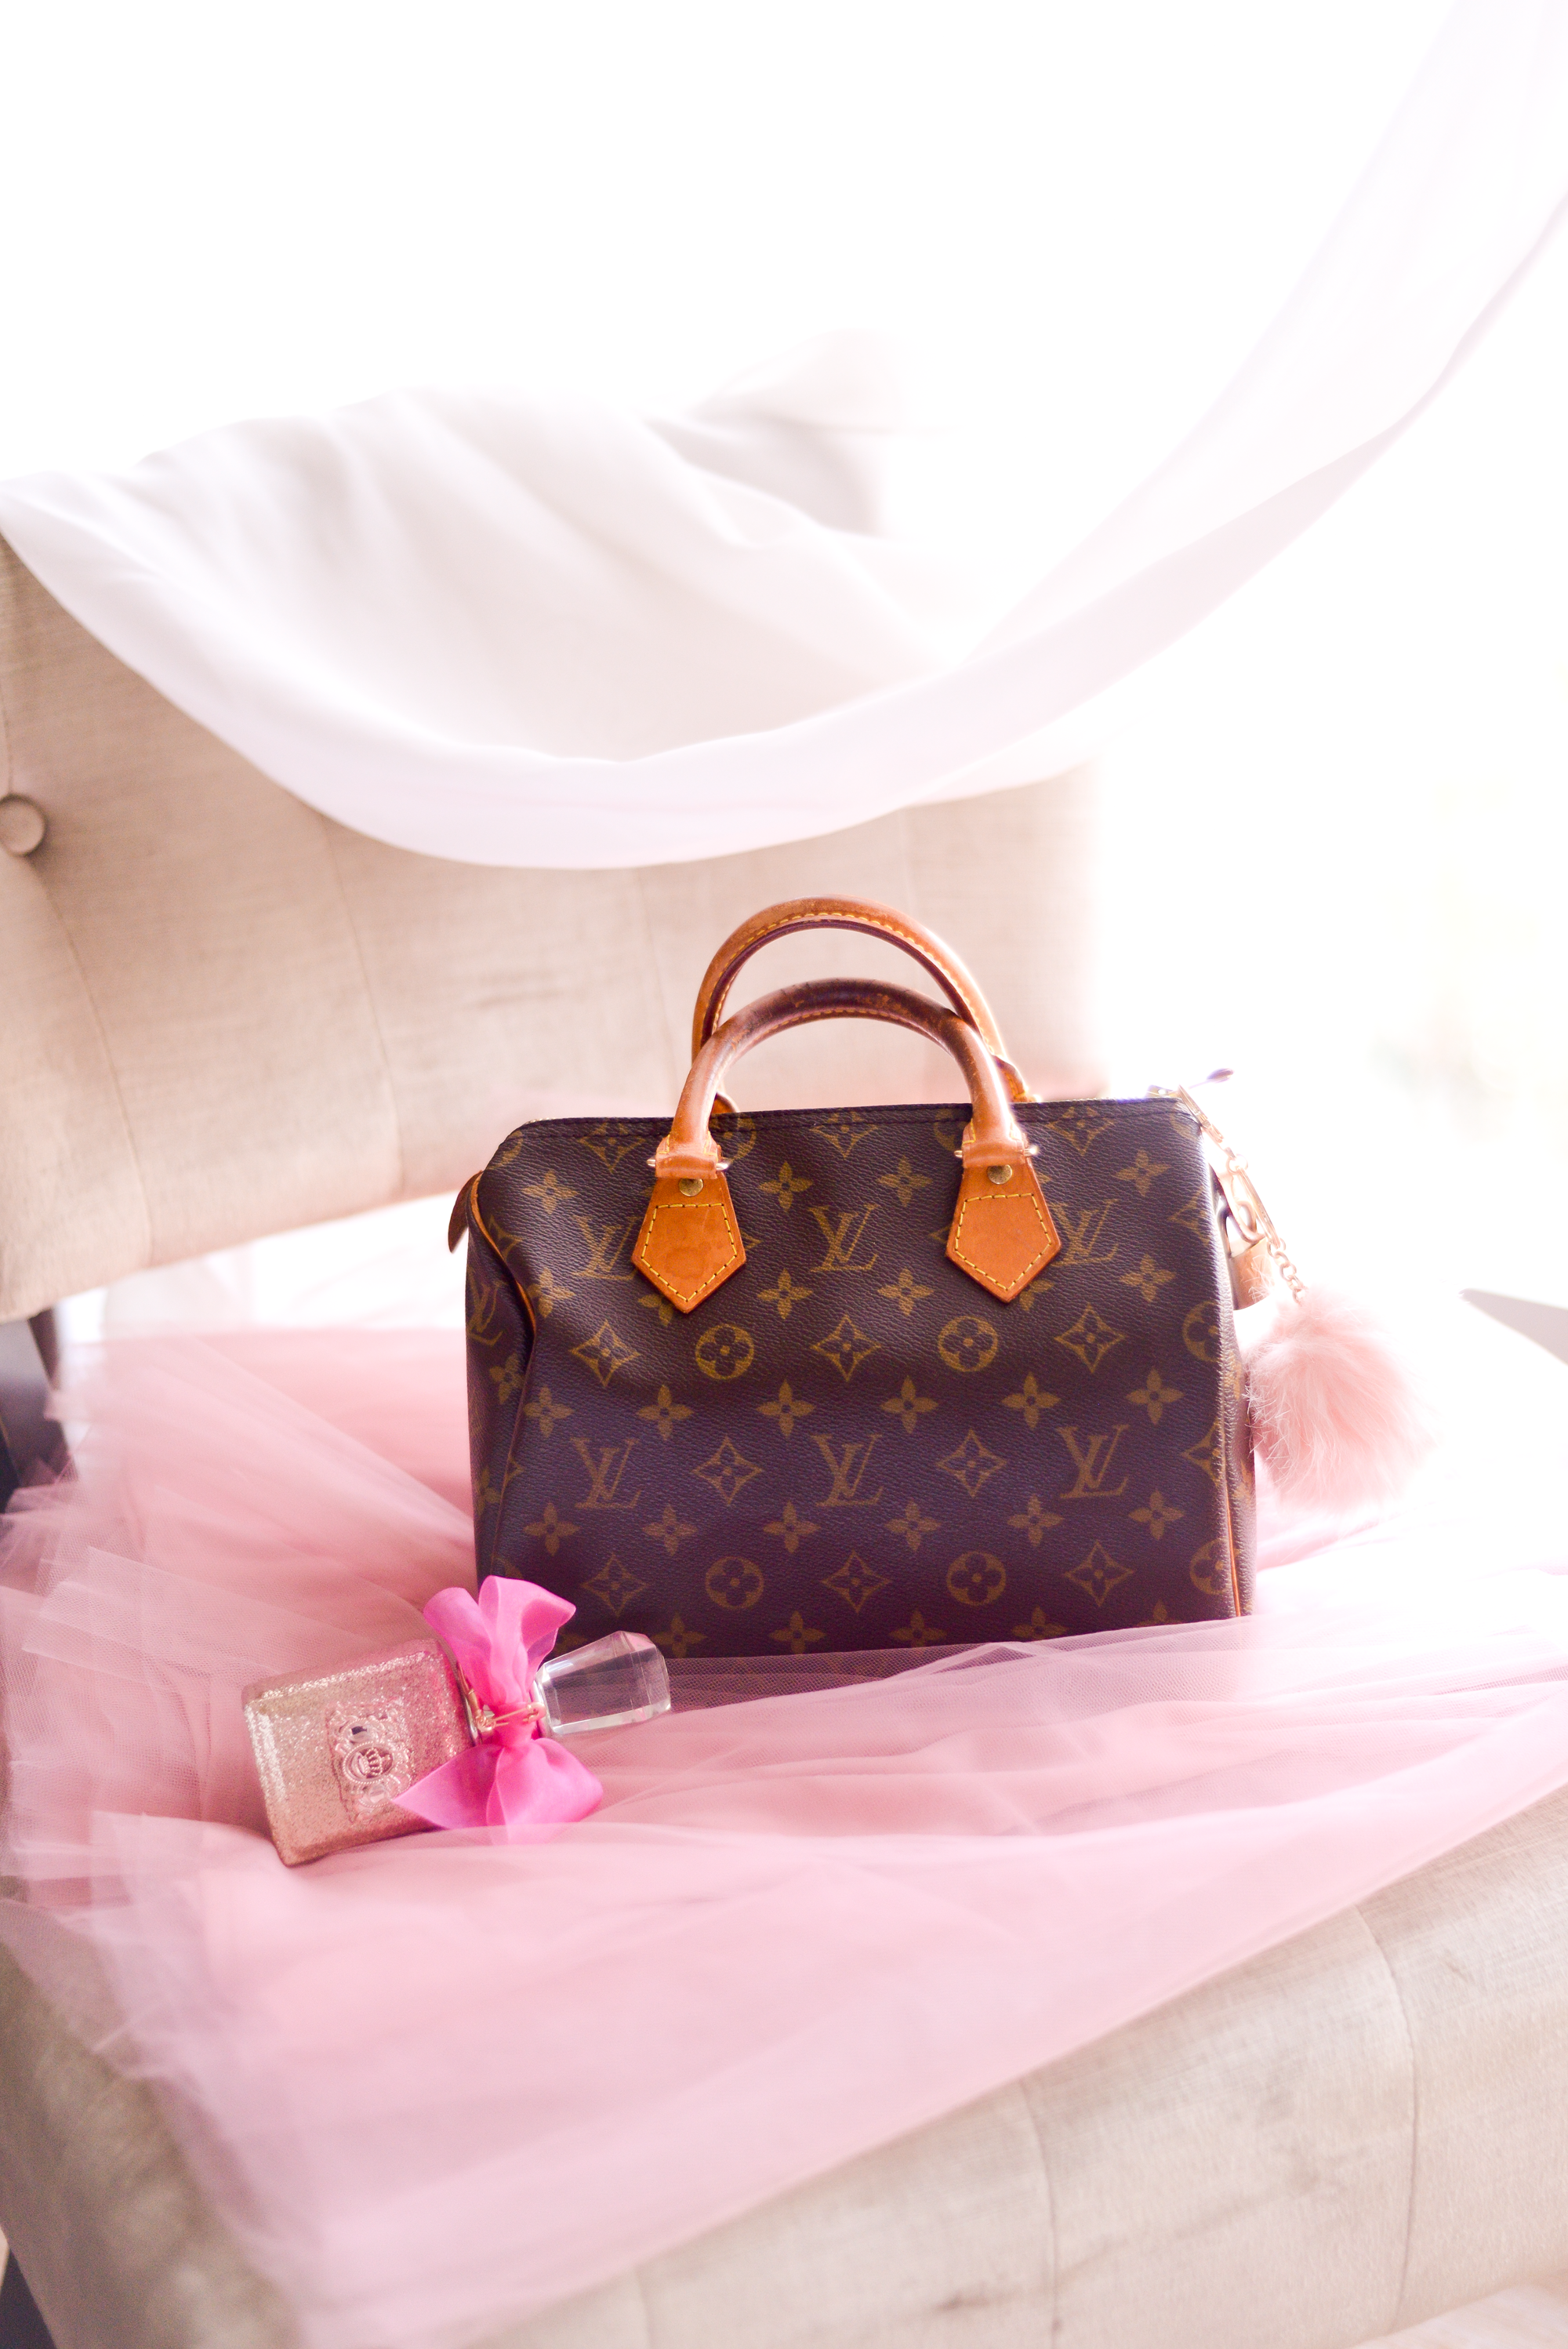 Tips For Budgeting For The Purse Of Your Dreams